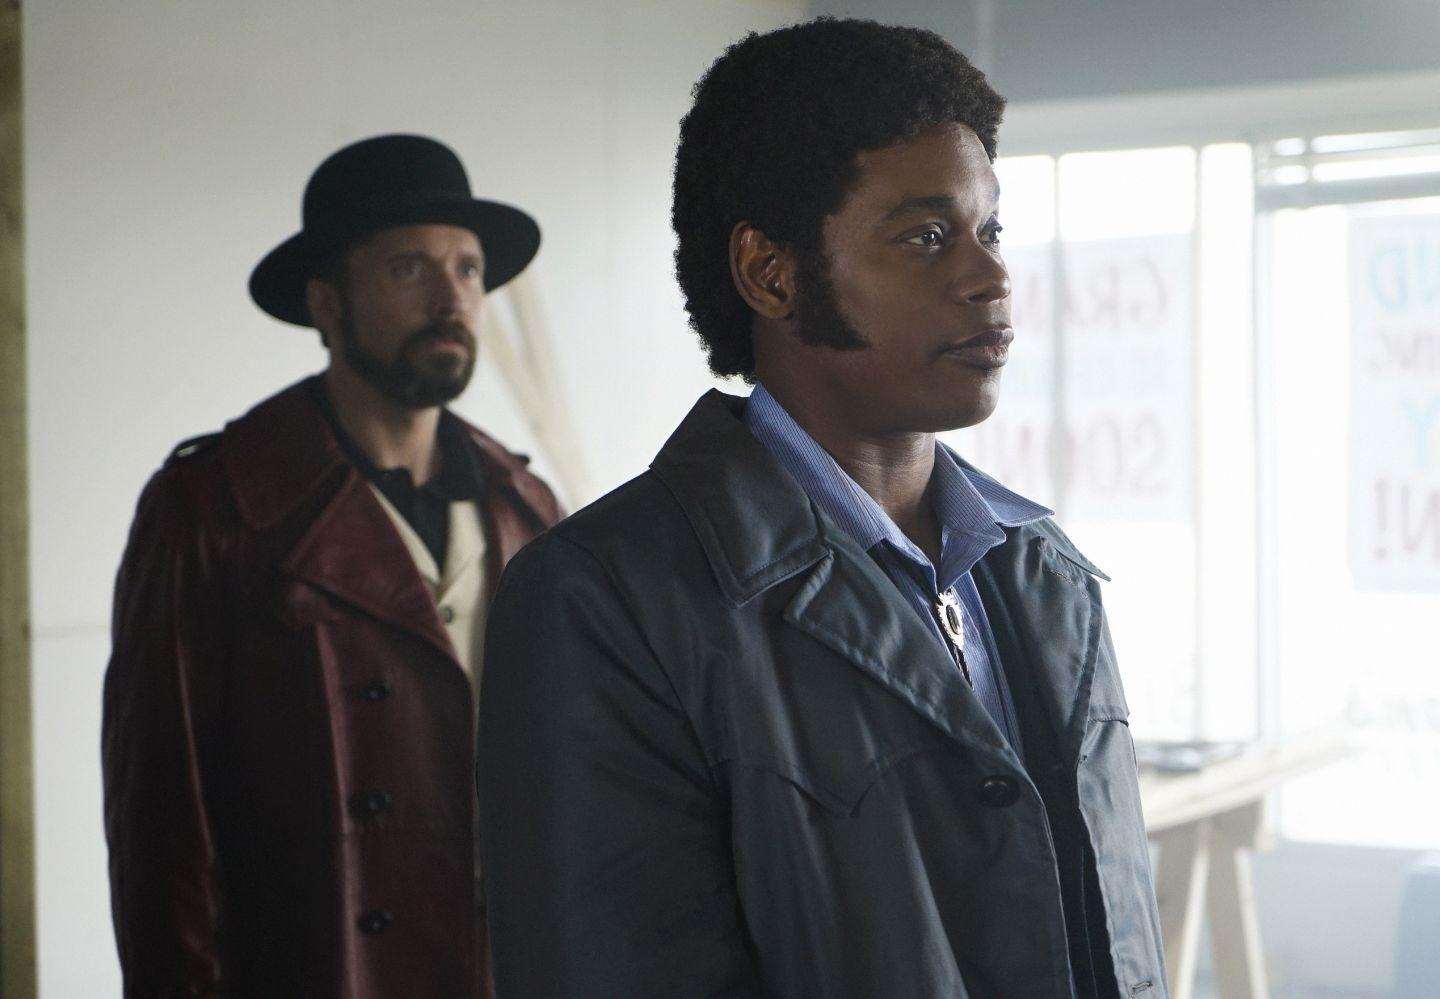 Pictured: (l-r) Brad Mann as Gale Kitchen, Bokeem Woodbine as Mike Milligan